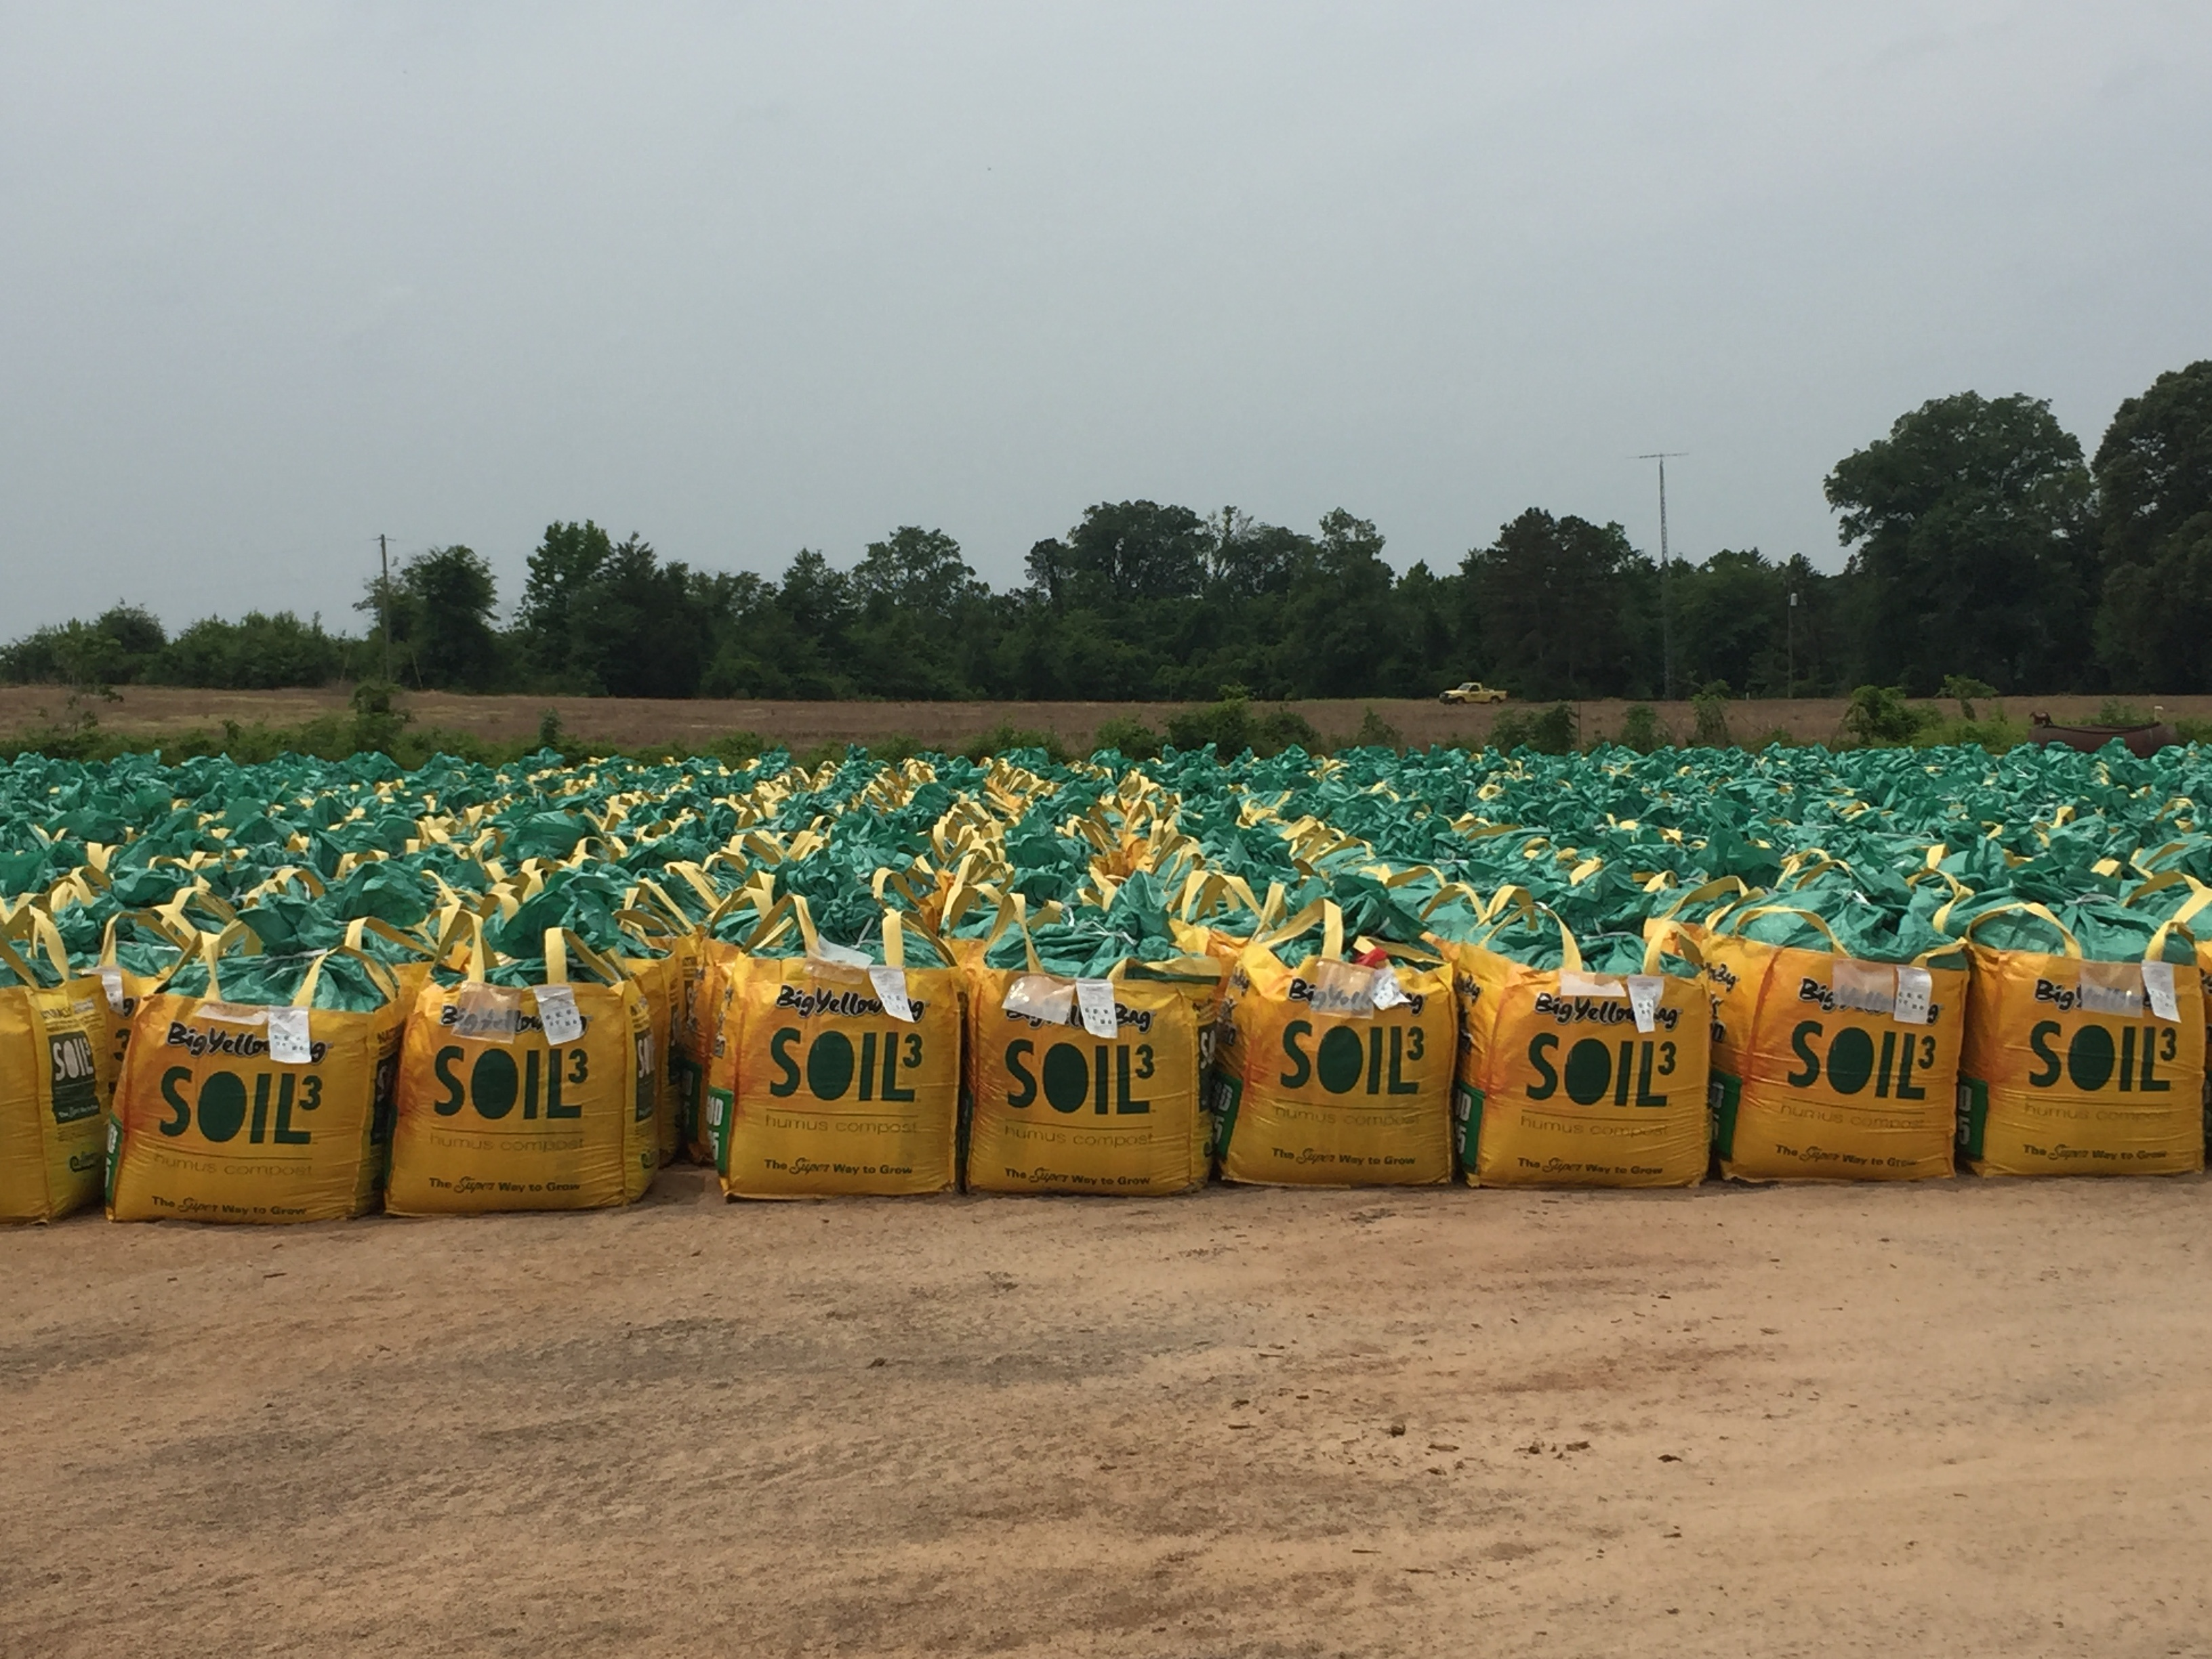 super sod soil3 bags